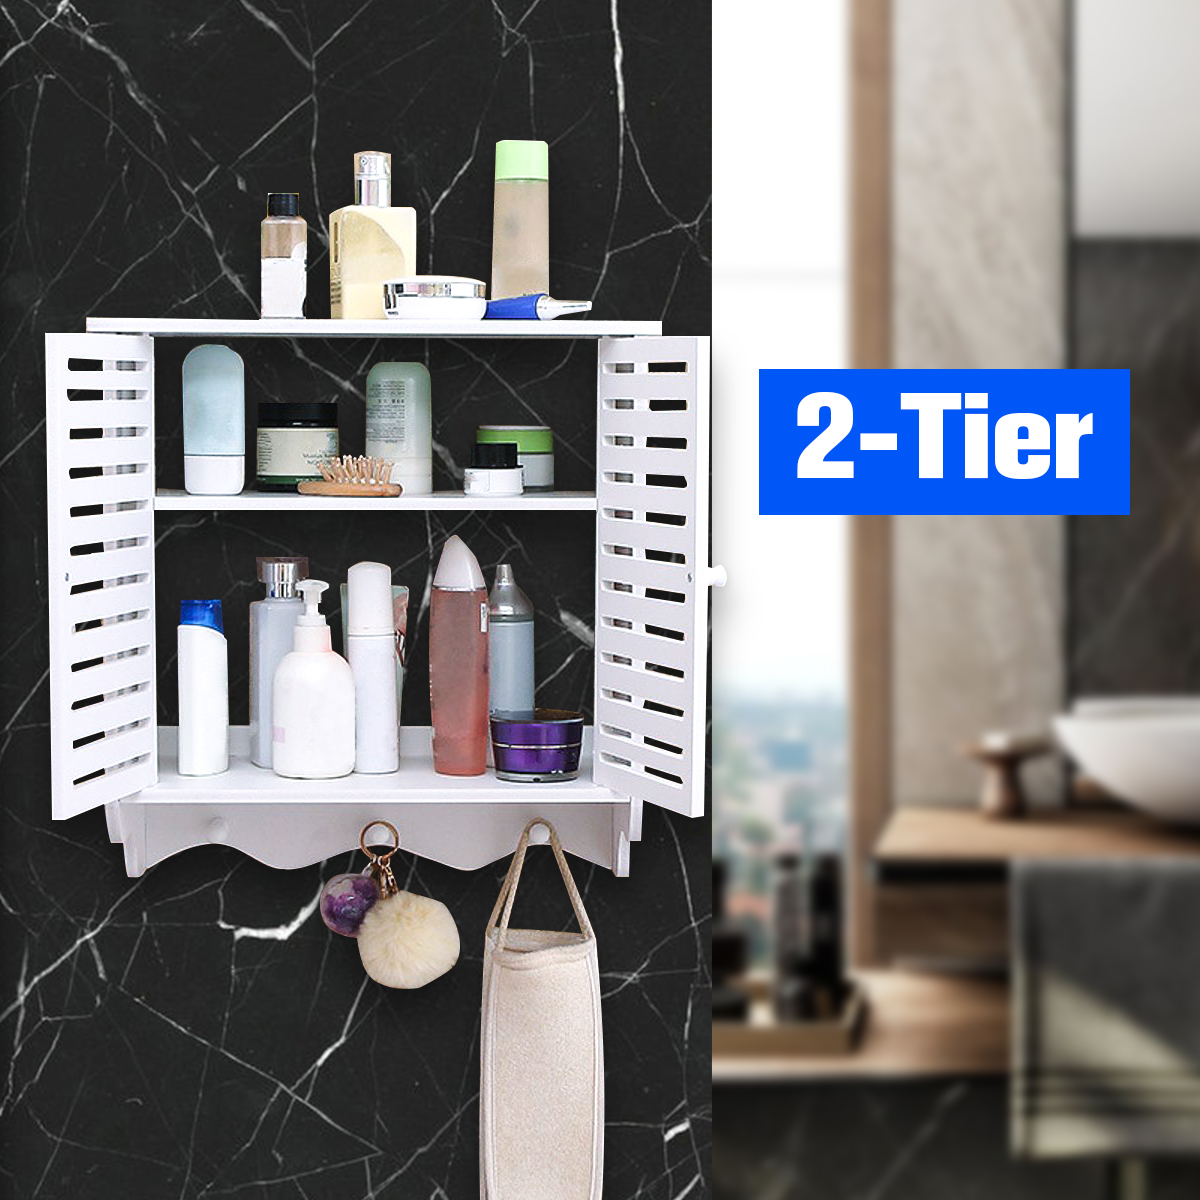 2 Tier Bathroom Wall Mount Shelf Shower Cosmetic Storage Closet Organizer Holder Walmart Canada